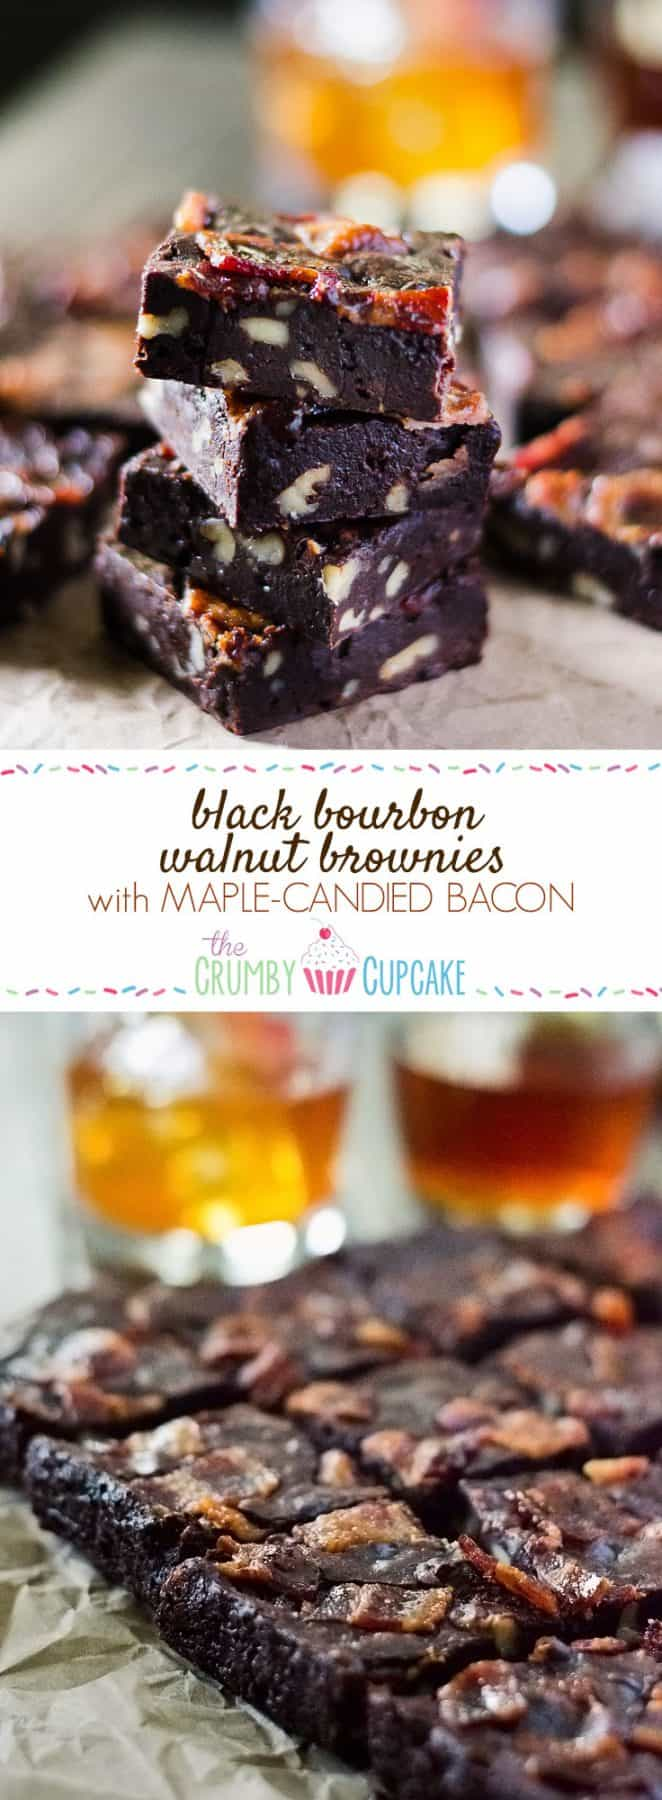 Black Bourbon Walnut Brownies with Maple-Candied Bacon | Dark chocolate, walnuts, and bourbon whiskey come together with maple-candied bacon to create the manliest, most decadent batch of brownies you'll ever eat! They're perfect for the men in your life with both a killer sweet tooth and a fine palate!